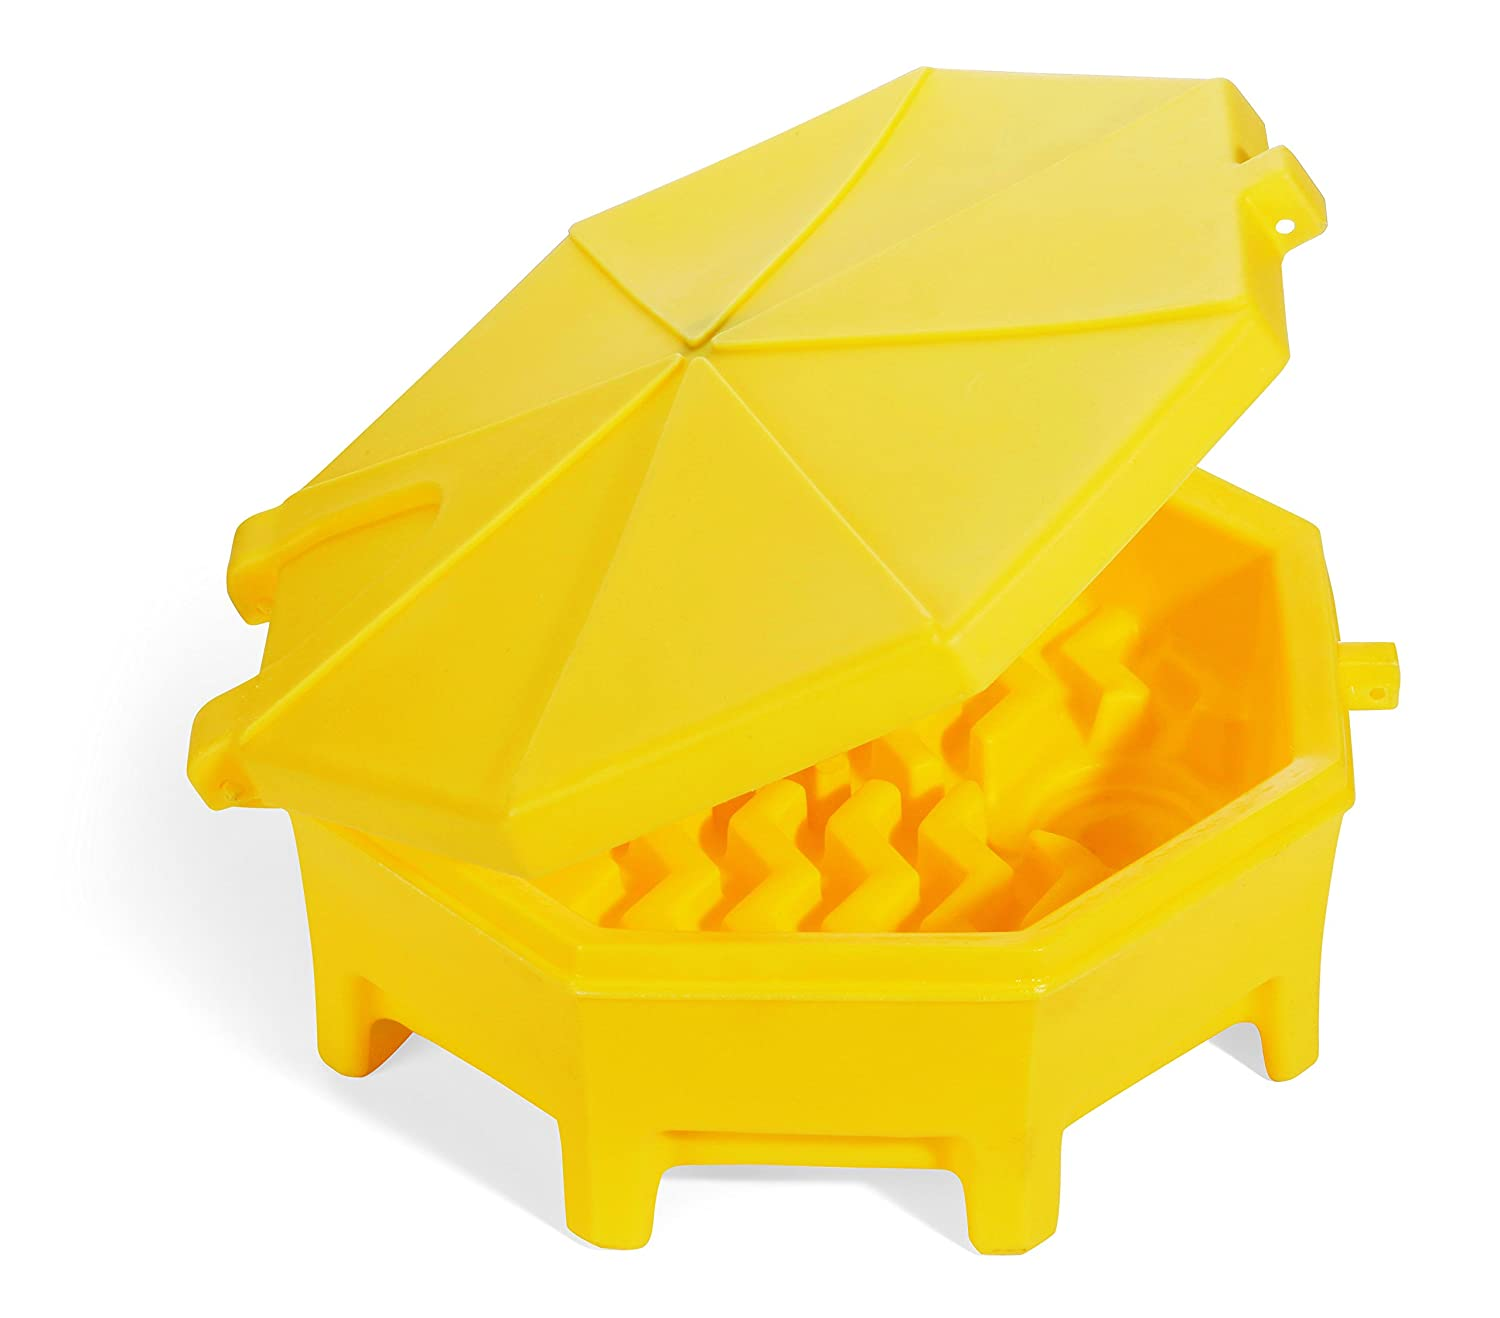 New Pig DRM672-YW PIG Poly Drum Funnel, 73 cm Length x 67 cm Width x 29 cm Height x 74 cm Diameter, Yellow New Pig Corporation